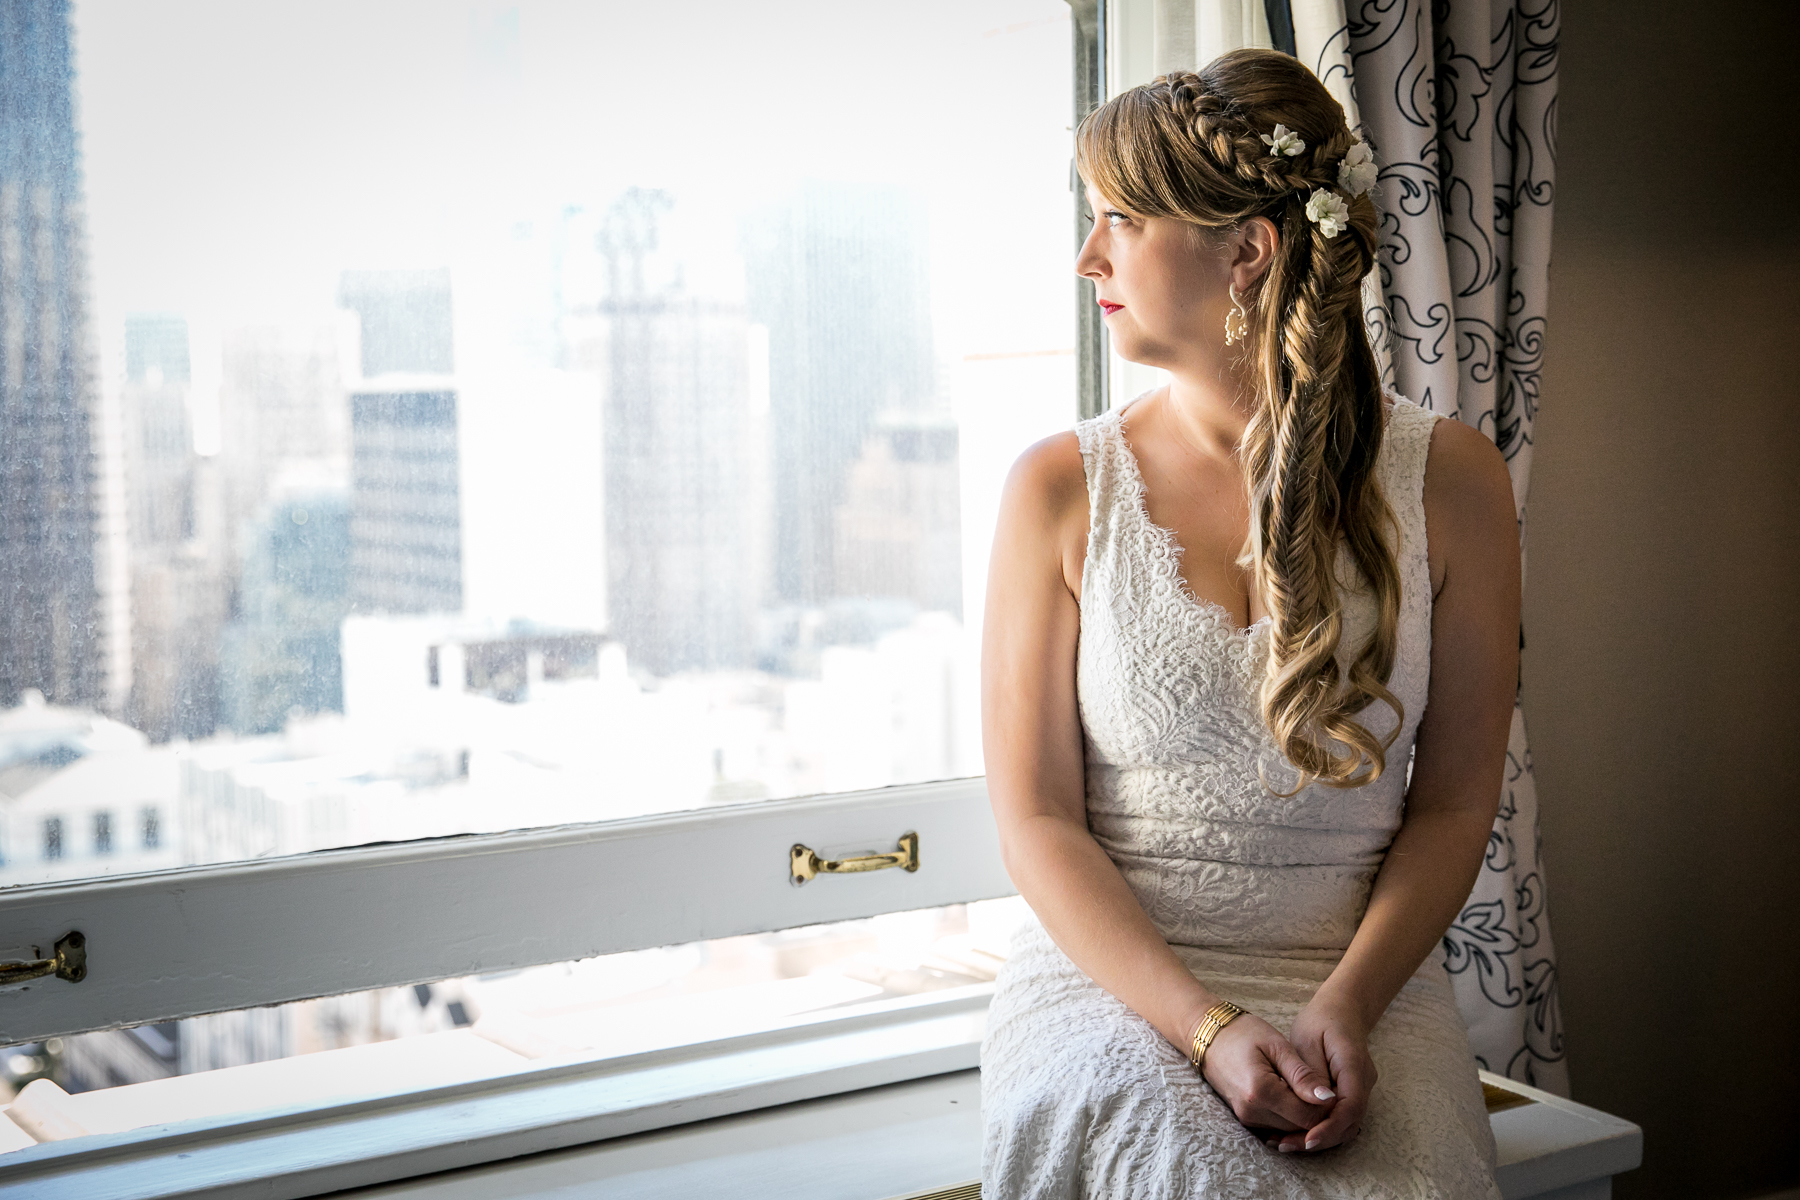 quiet moment for bride at window prior to first look at fairmont wedding photos